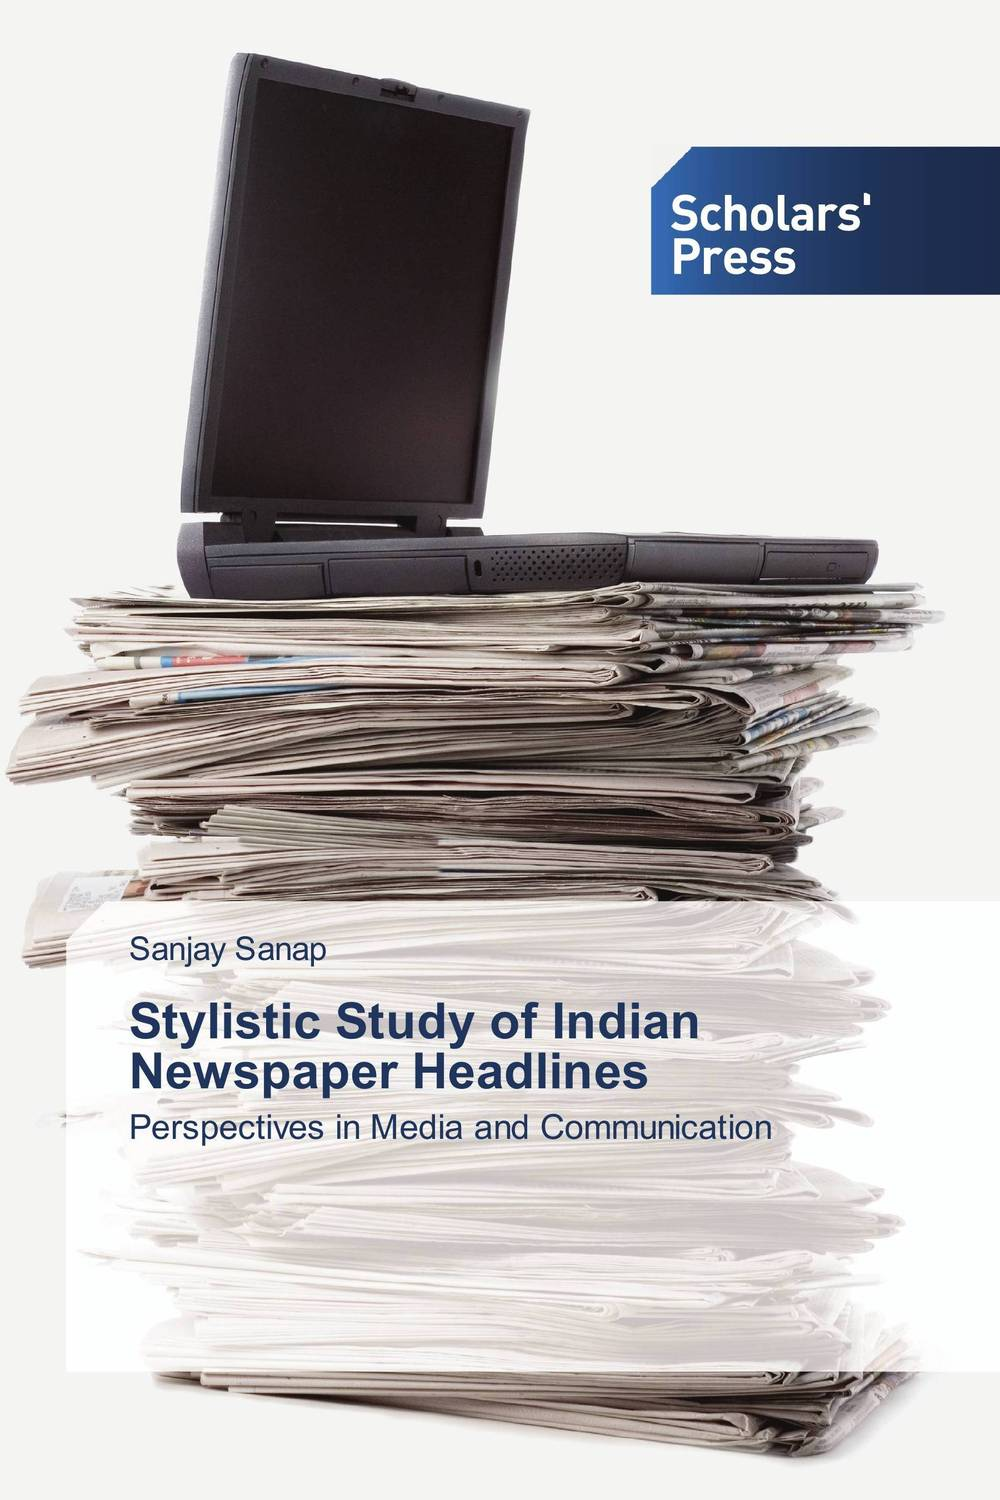 Stylistic Study of Indian Newspaper Headlines multilingualism and language choice for news delivery